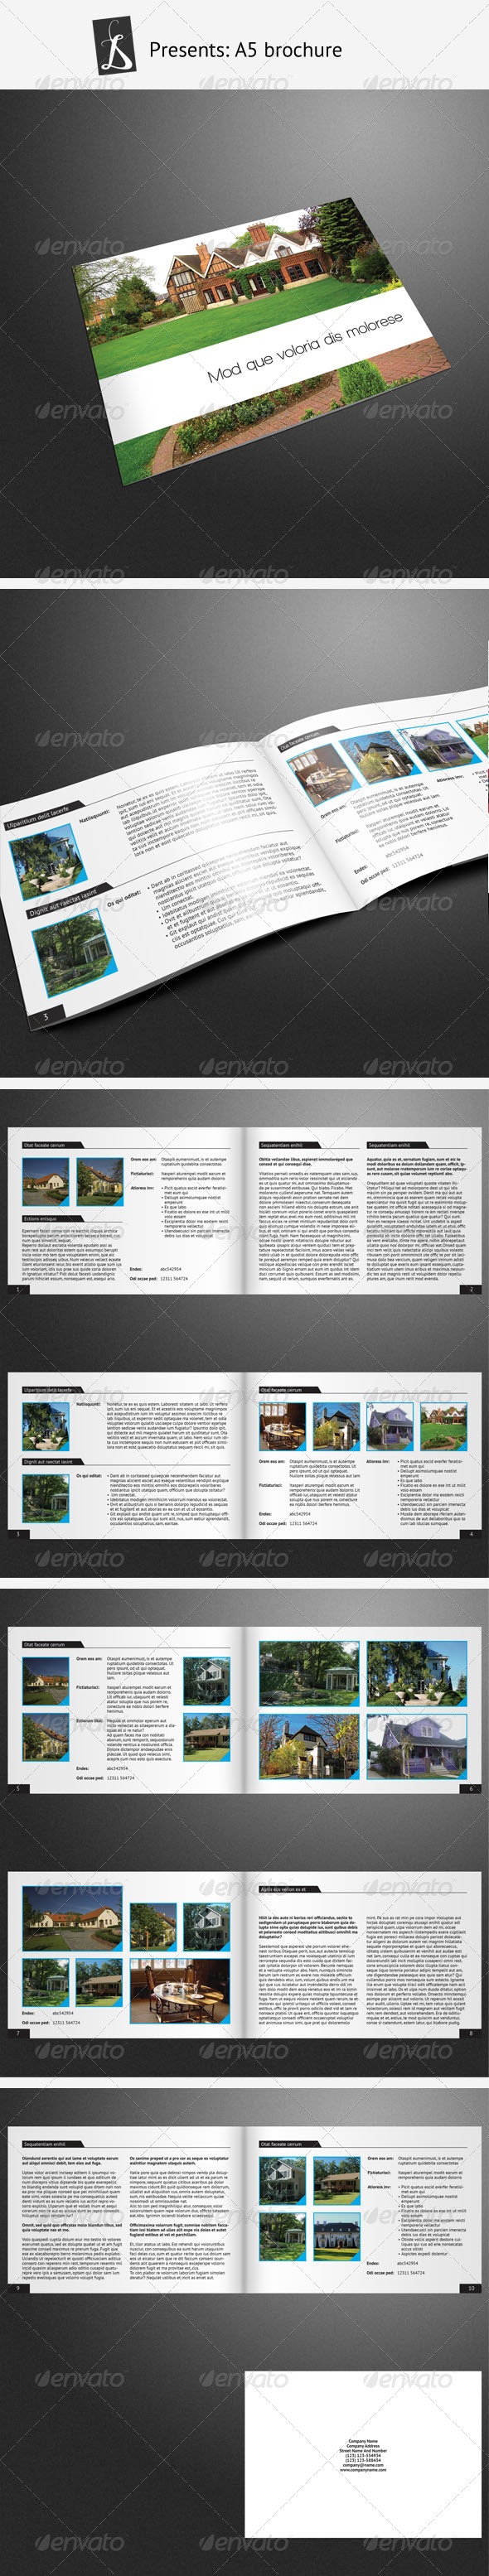 GraphicRiver A5 brochure 6 339580